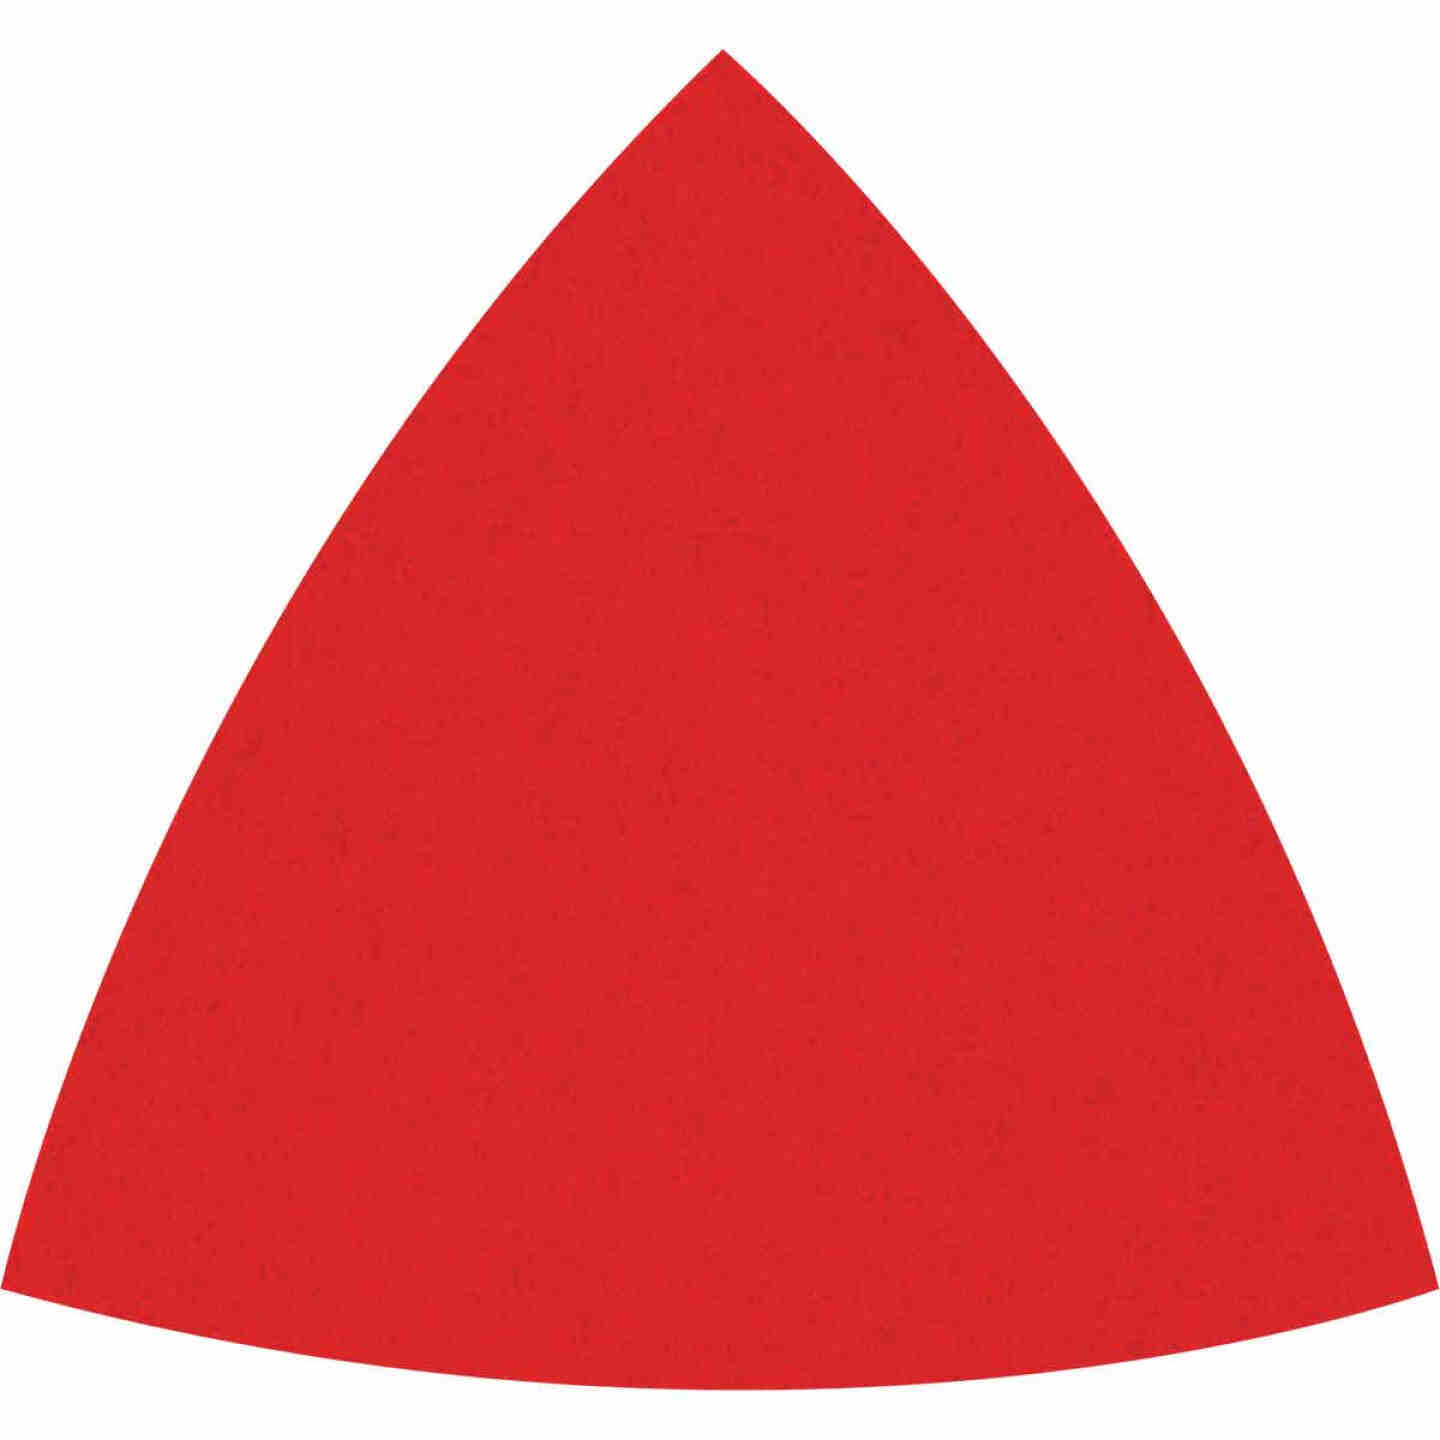 Diablo 120-Grit (Fine) 3-1/8 In. Oscillating Detail Triangle Sanding Sheets (10-Pack) Image 1